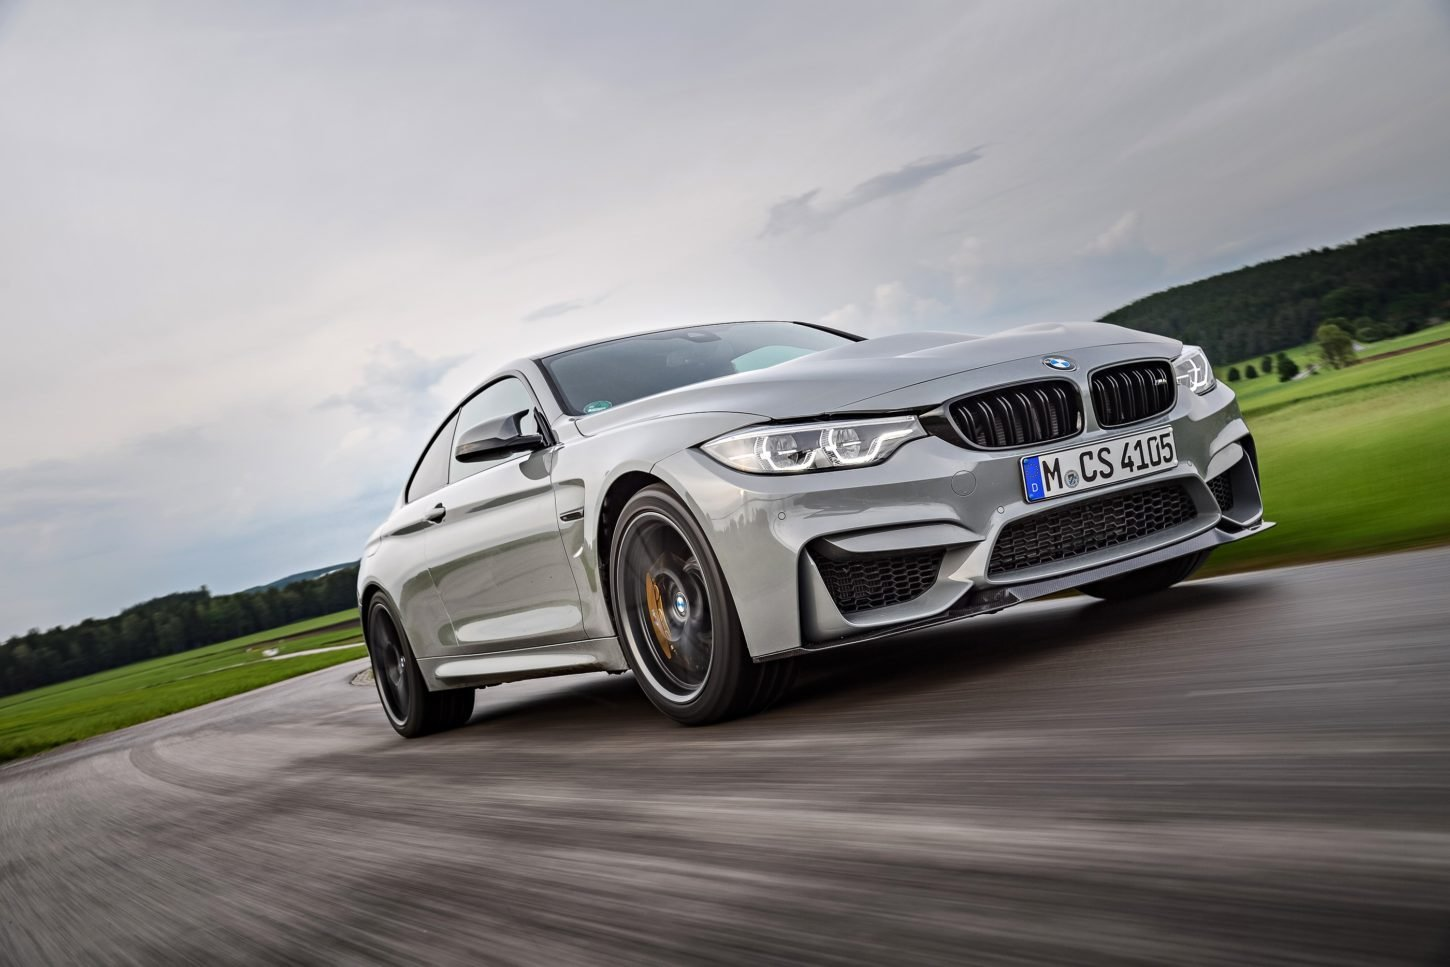 Latest 2018 Bmw M4 Cs Side Hd Photo Car Preview And Rumors Free Download